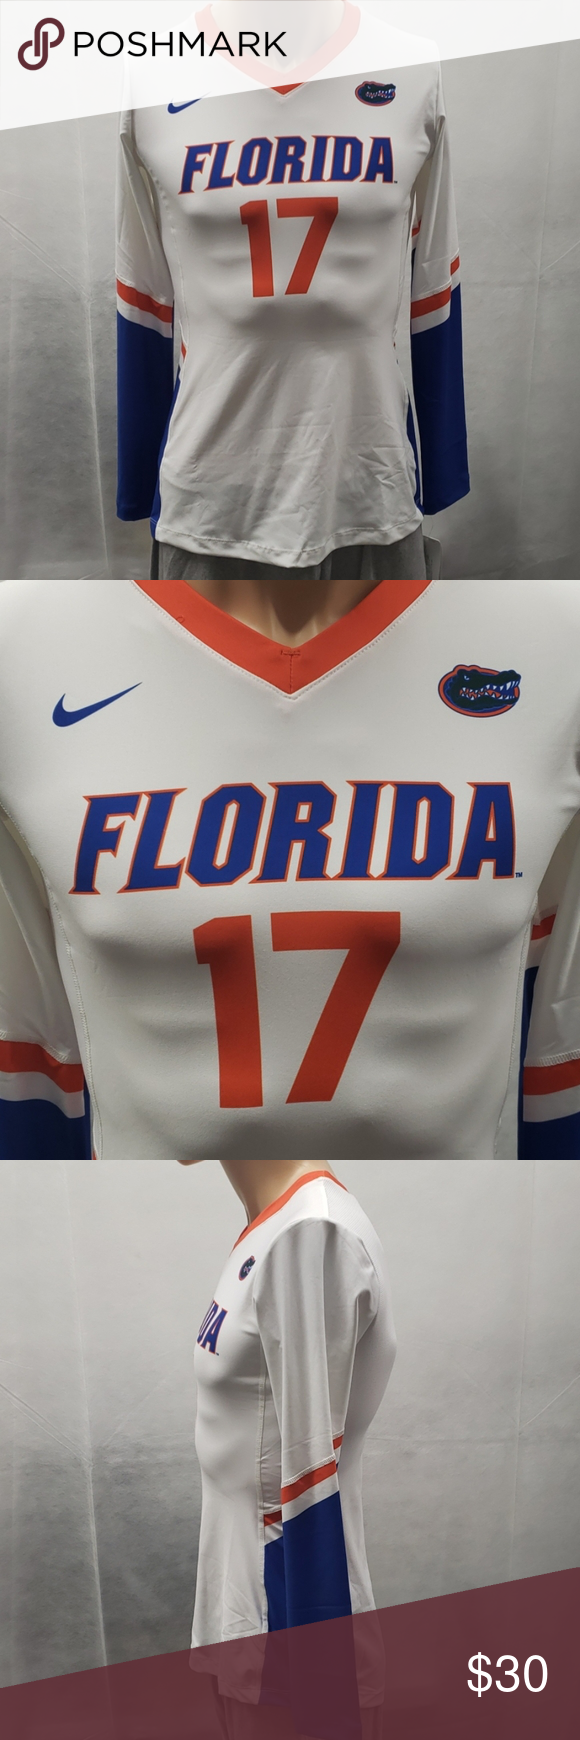 Florida Gators Volleyball Jersey Nike M In 2020 Volleyball Jerseys Florida Gators Volleyball